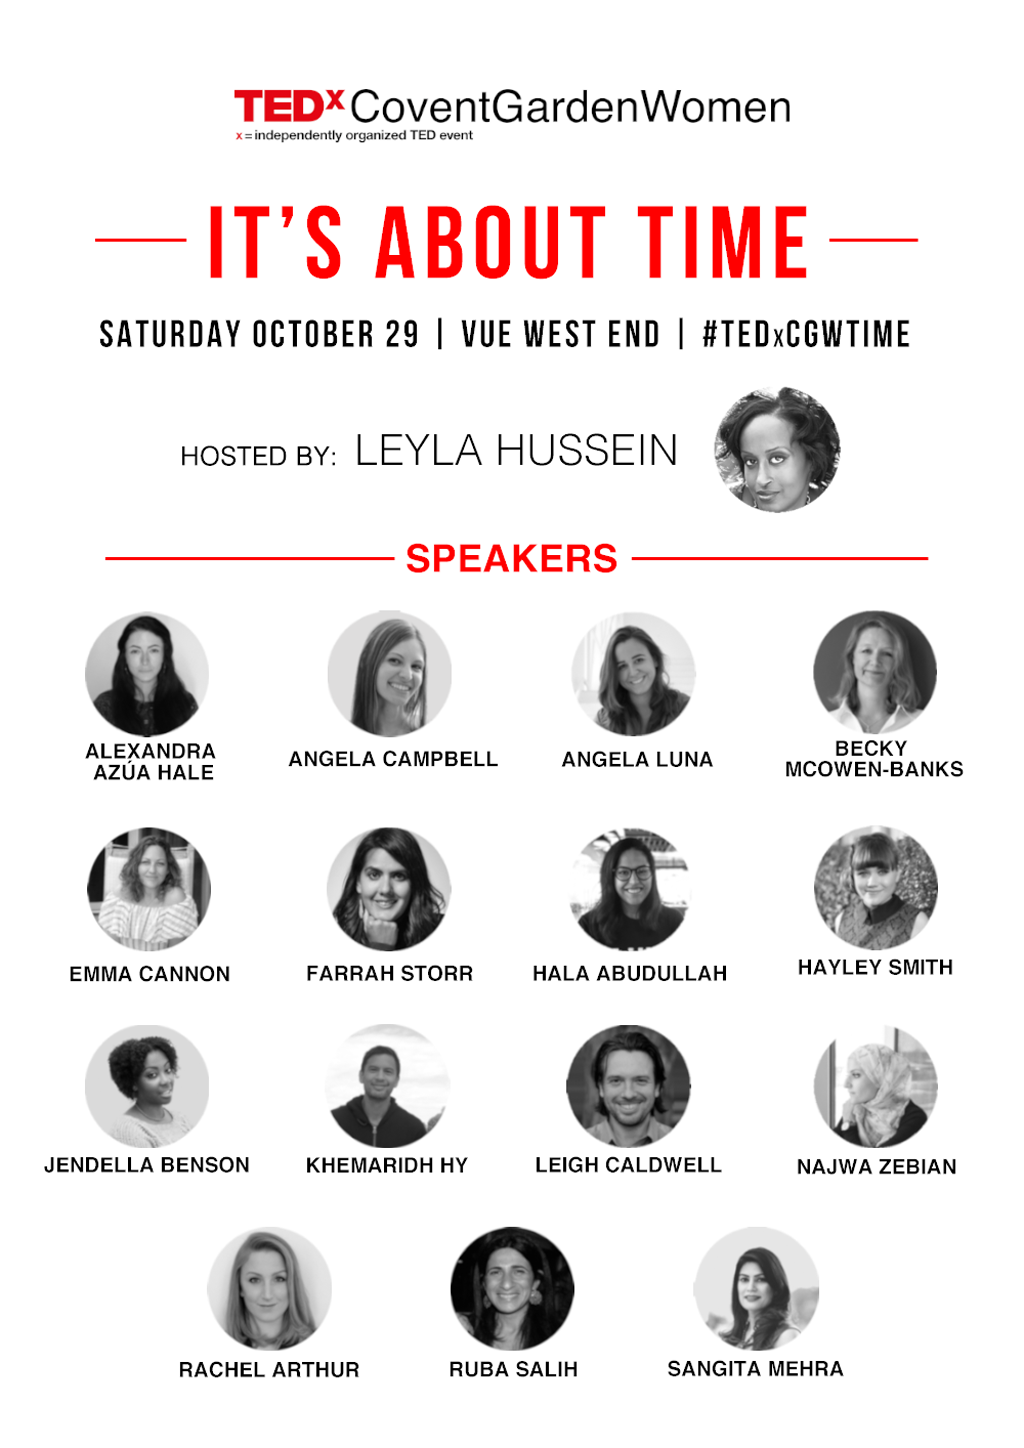 TEDxCoventGardenWomen 2016 Speakers